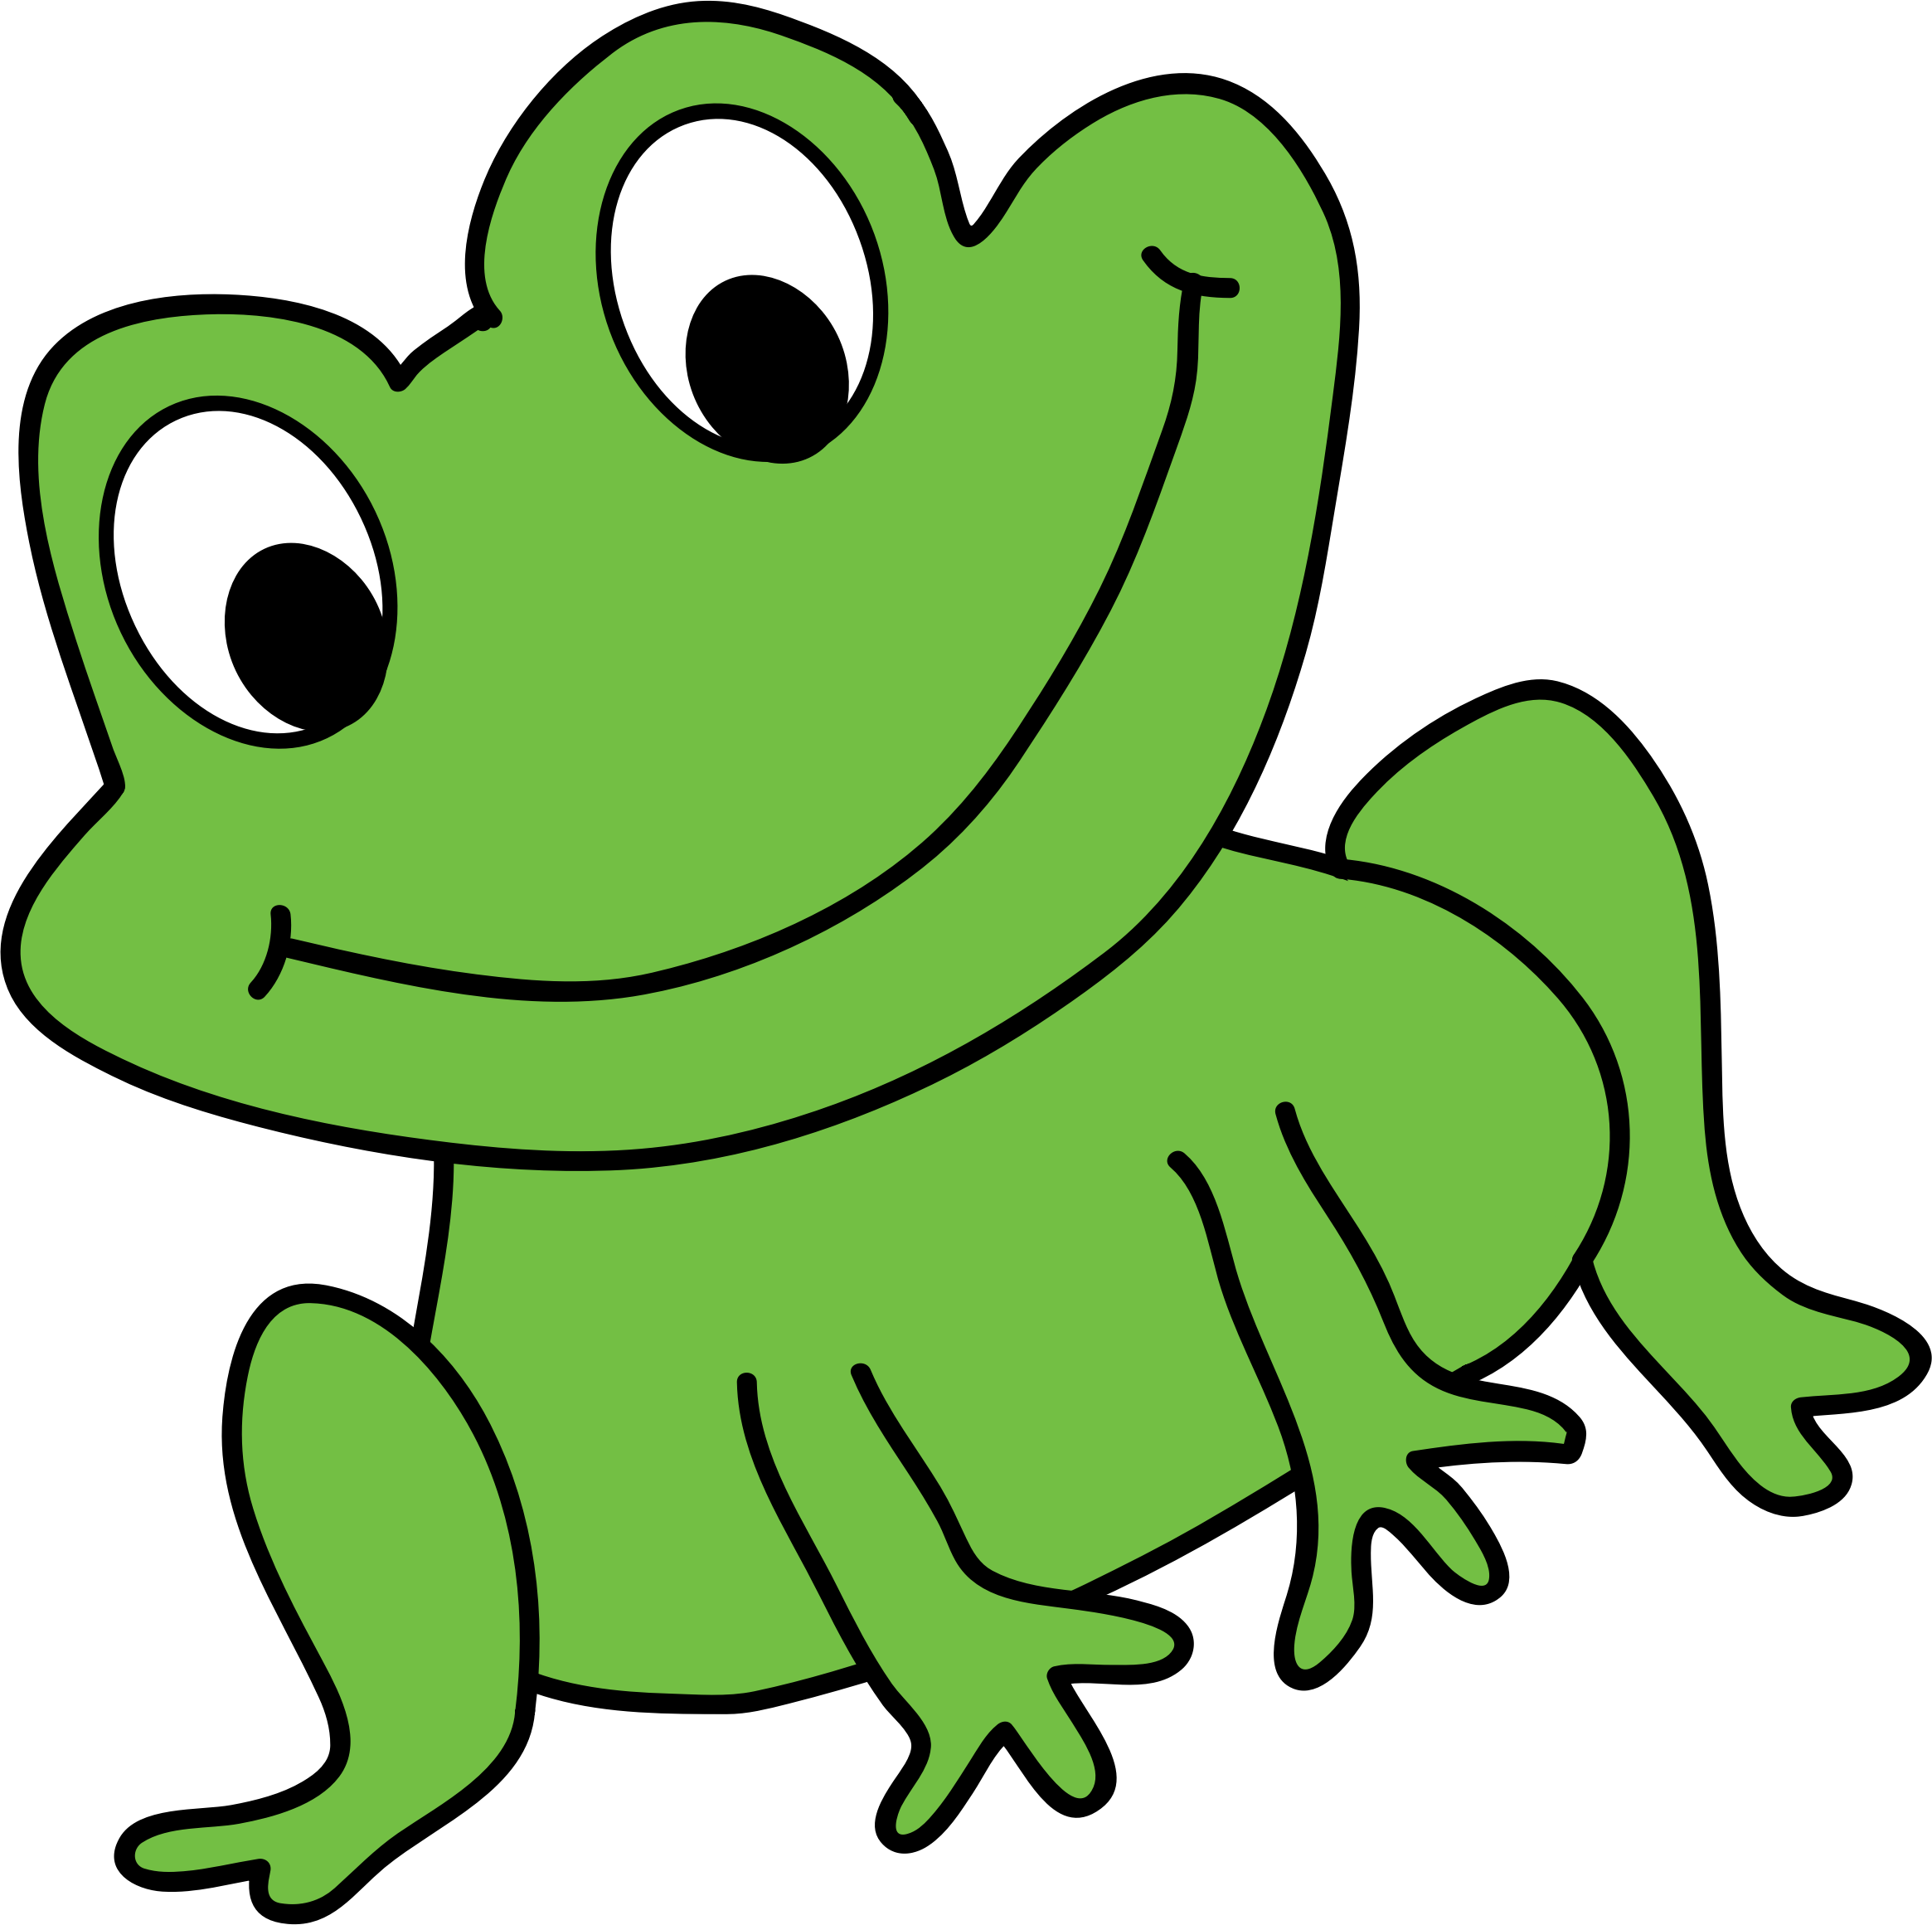 Green Frog Vector image - Free stock photo - Public Domain ...